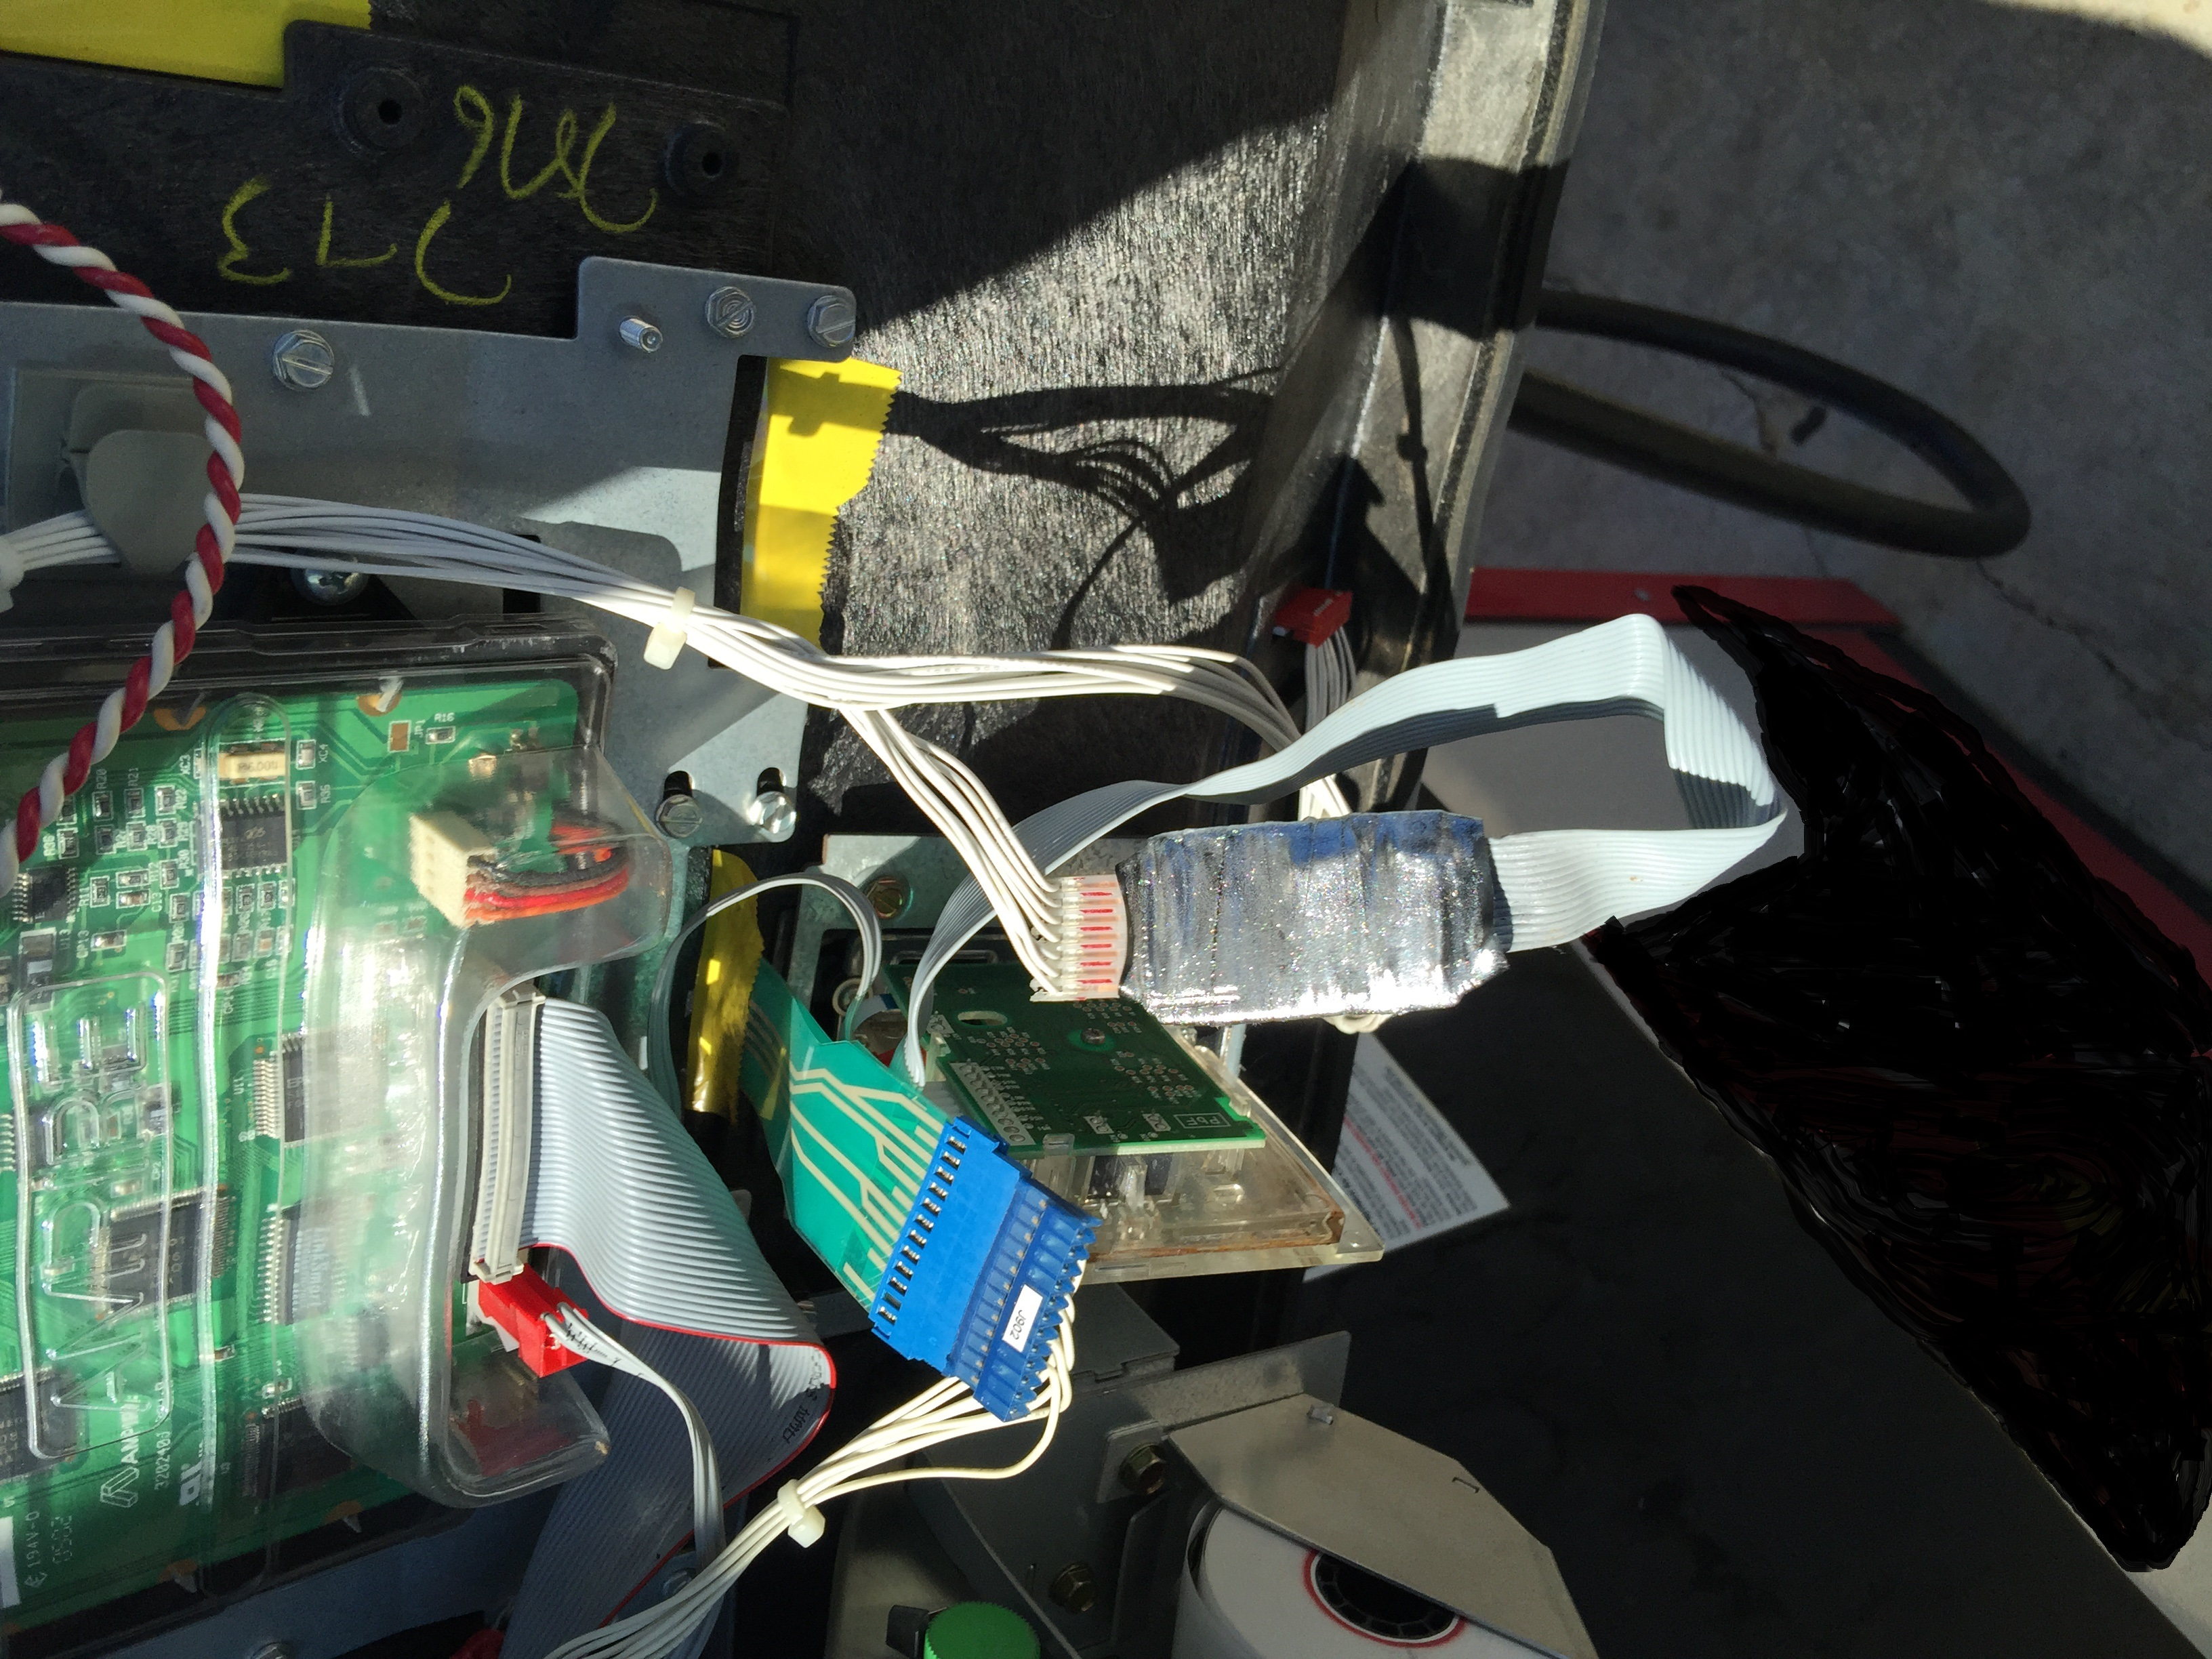 ATM / Fuel Pump Skimming Devices Being Used in Smyrna